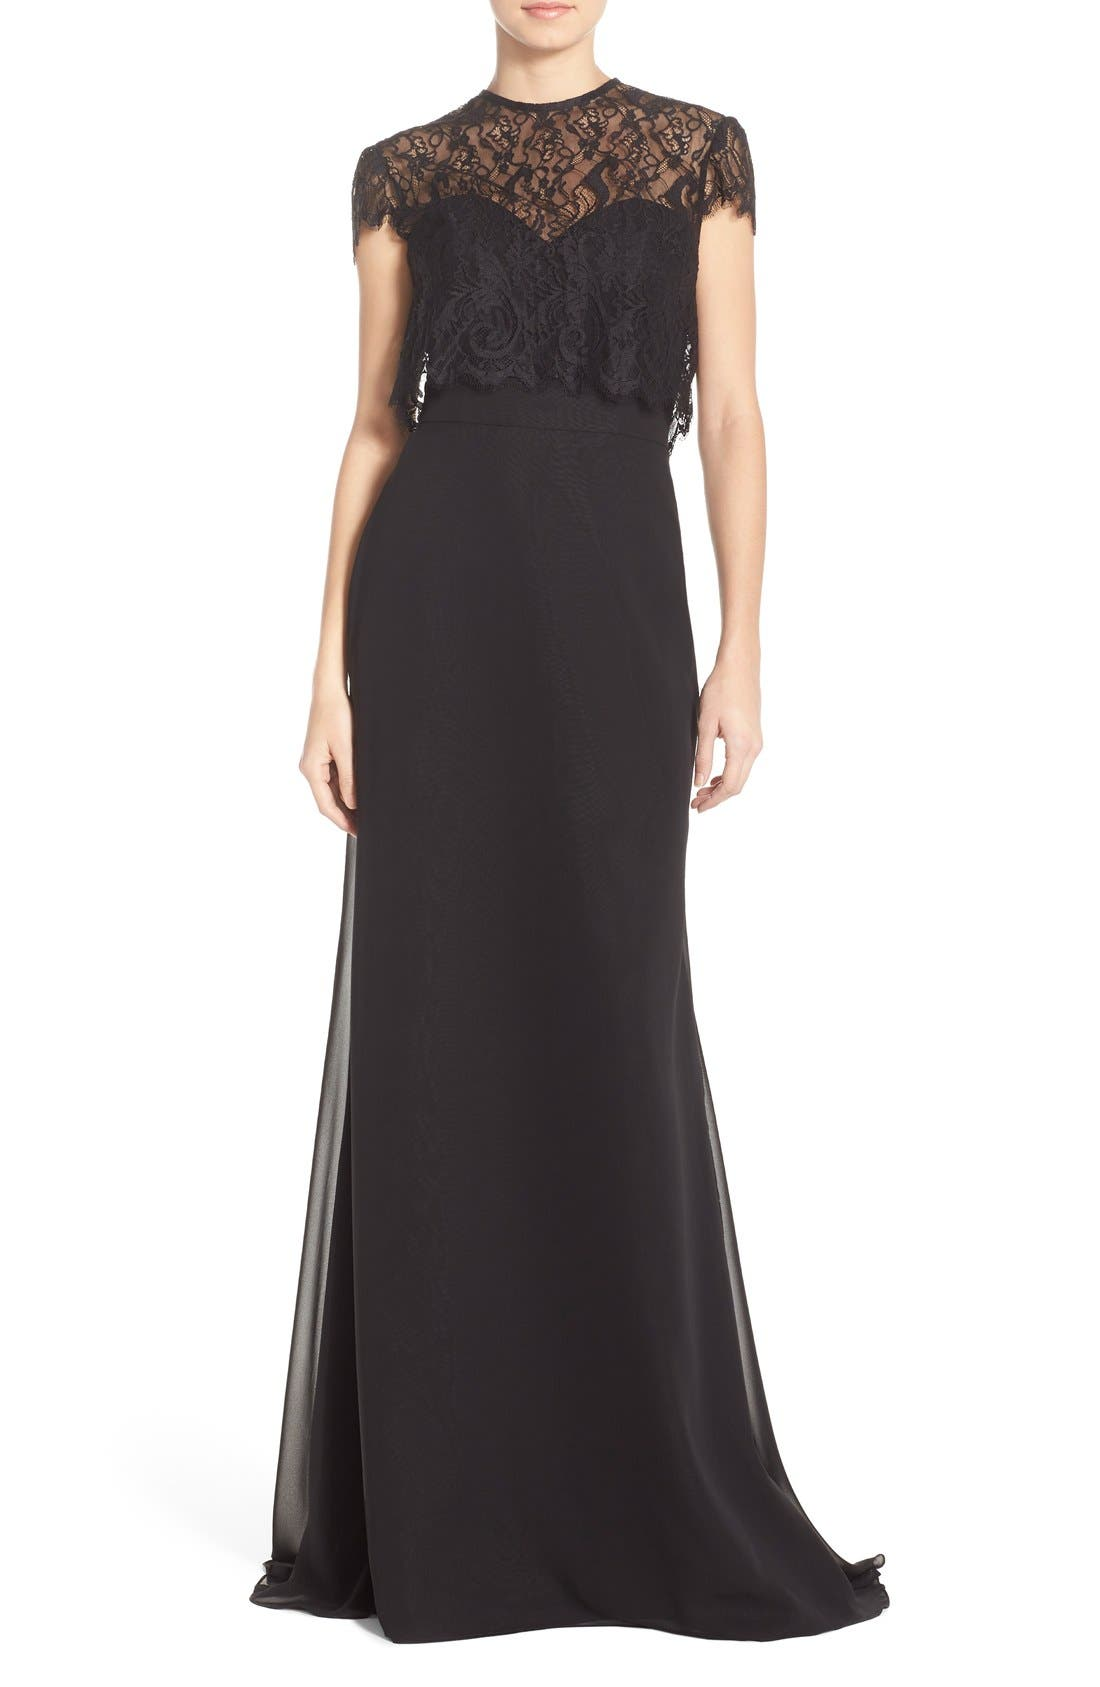 Strapless Chiffon A-Line Gown with Removable Lace Overlay,                             Main thumbnail 1, color,                             001